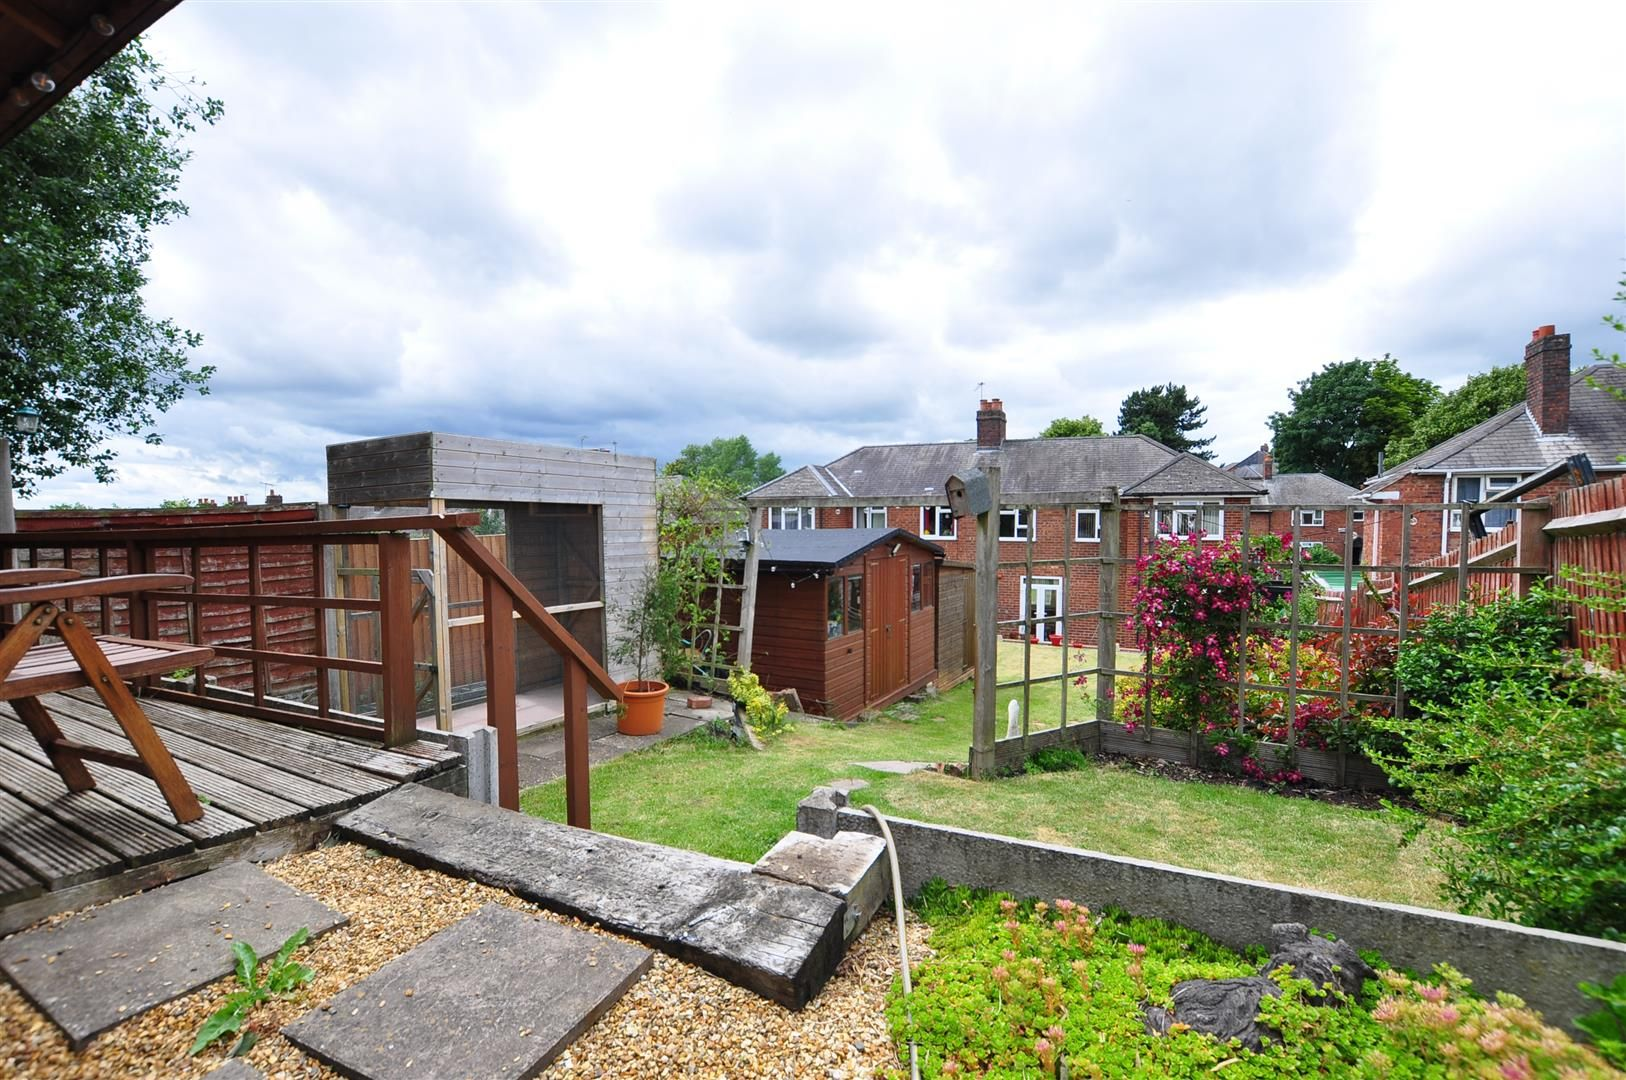 3 bed semi-detached for sale in Lower Gornal  - Property Image 19